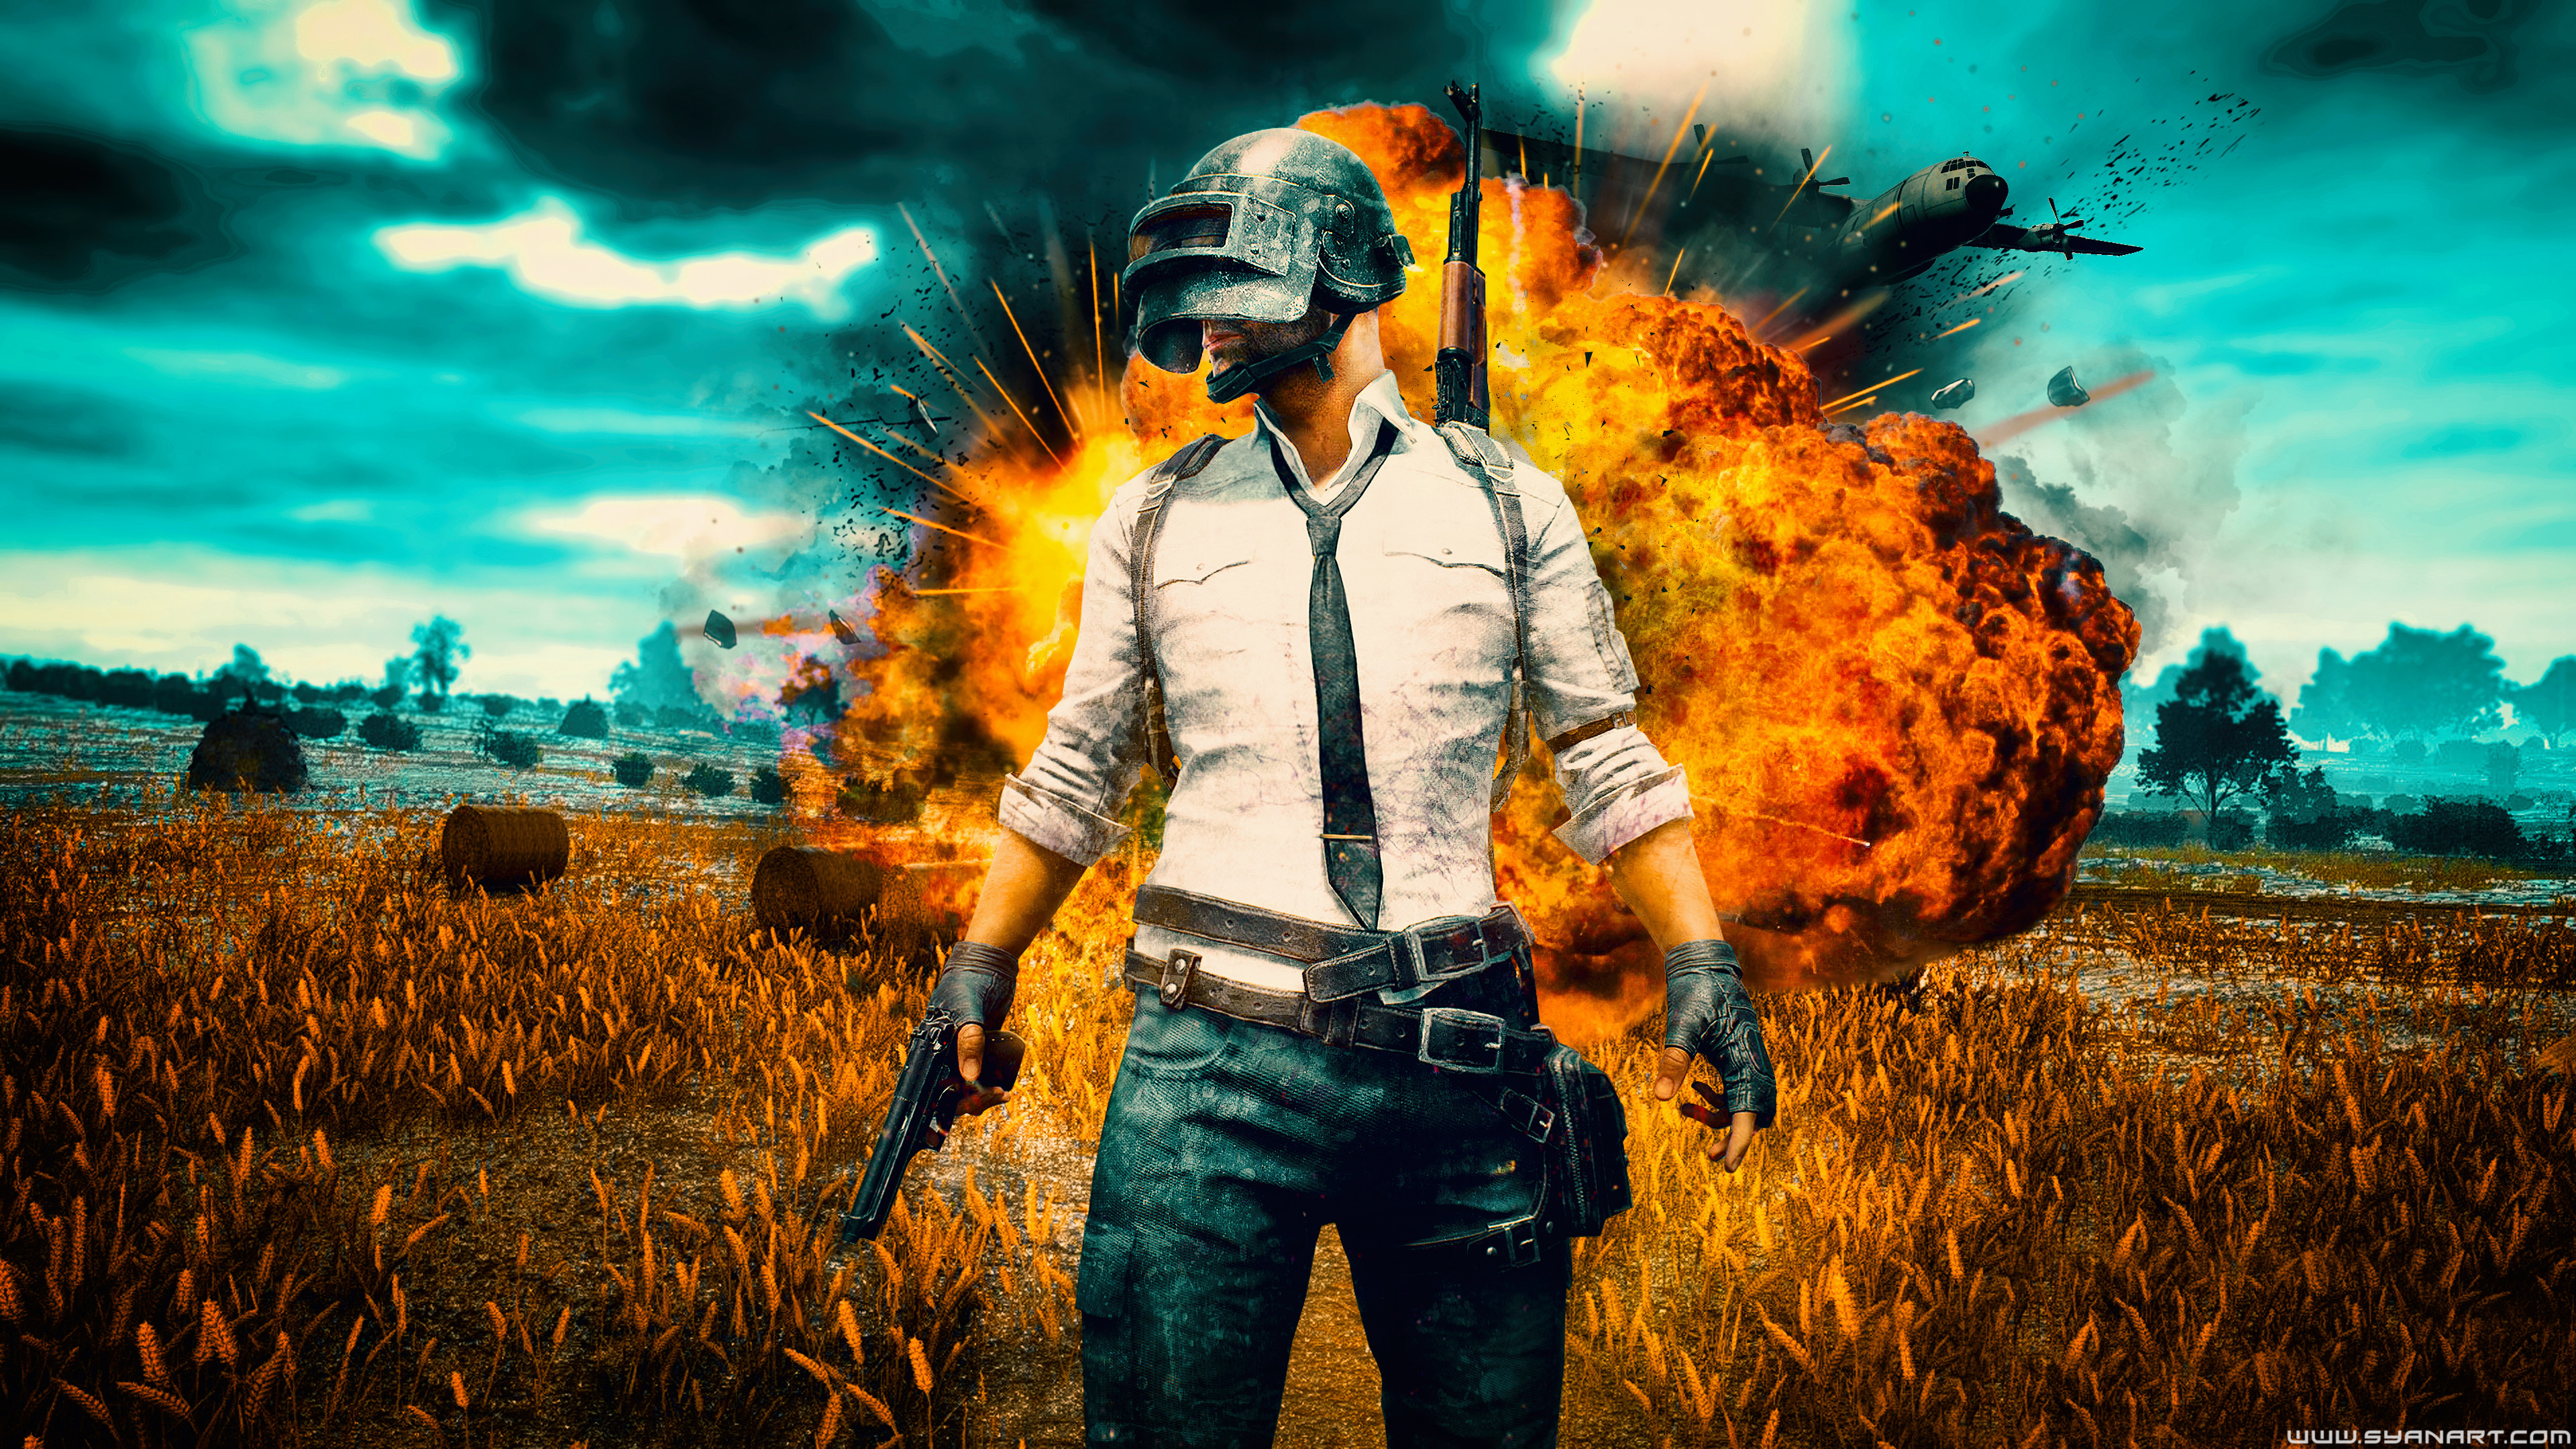 Pubg Game 4k Wallpaper Download: Pub Wallpaper (57+ Images